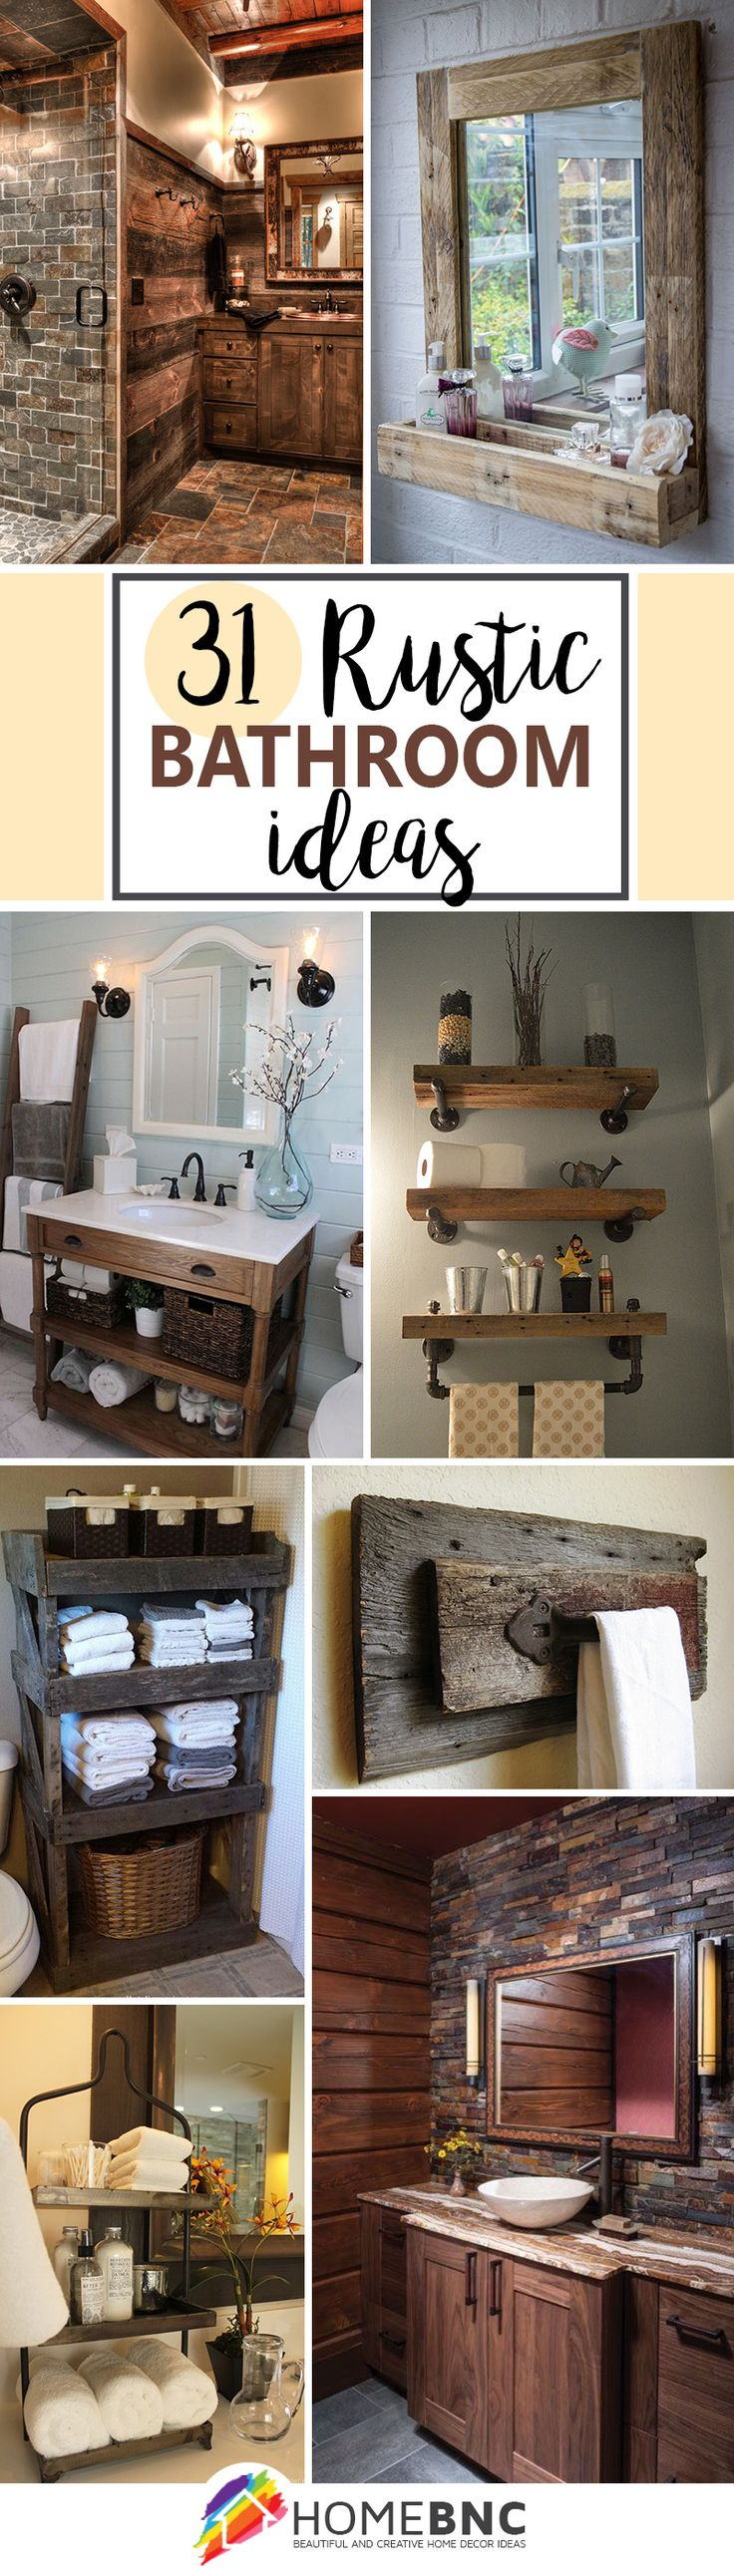 Small bathroom ideas pinterest - 31 Gorgeous Rustic Bathroom Decor Ideas To Try At Home